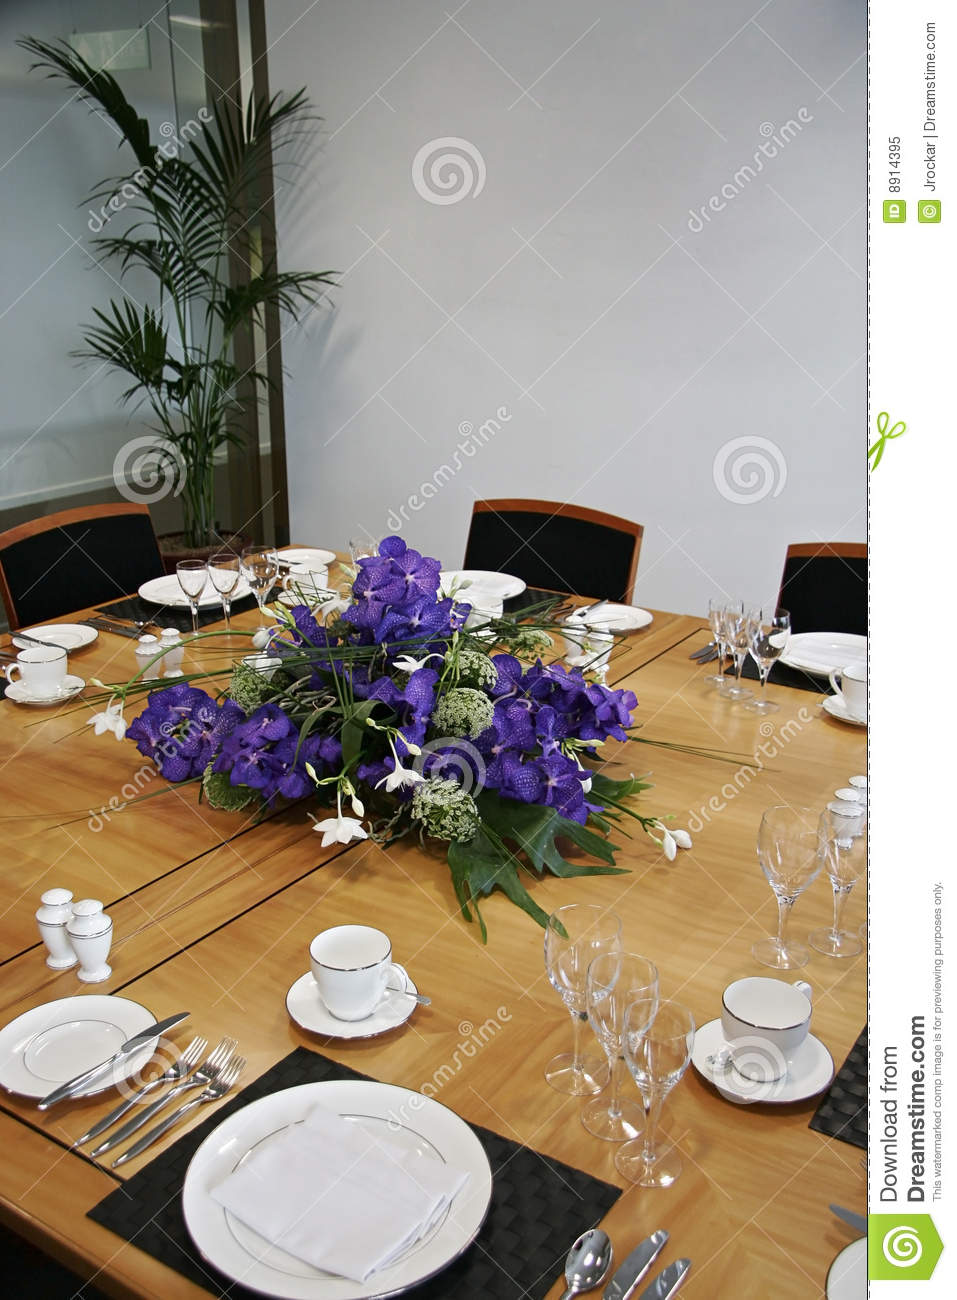 Restaurant table setup - Restaurant Table Setup With Cut Flowers